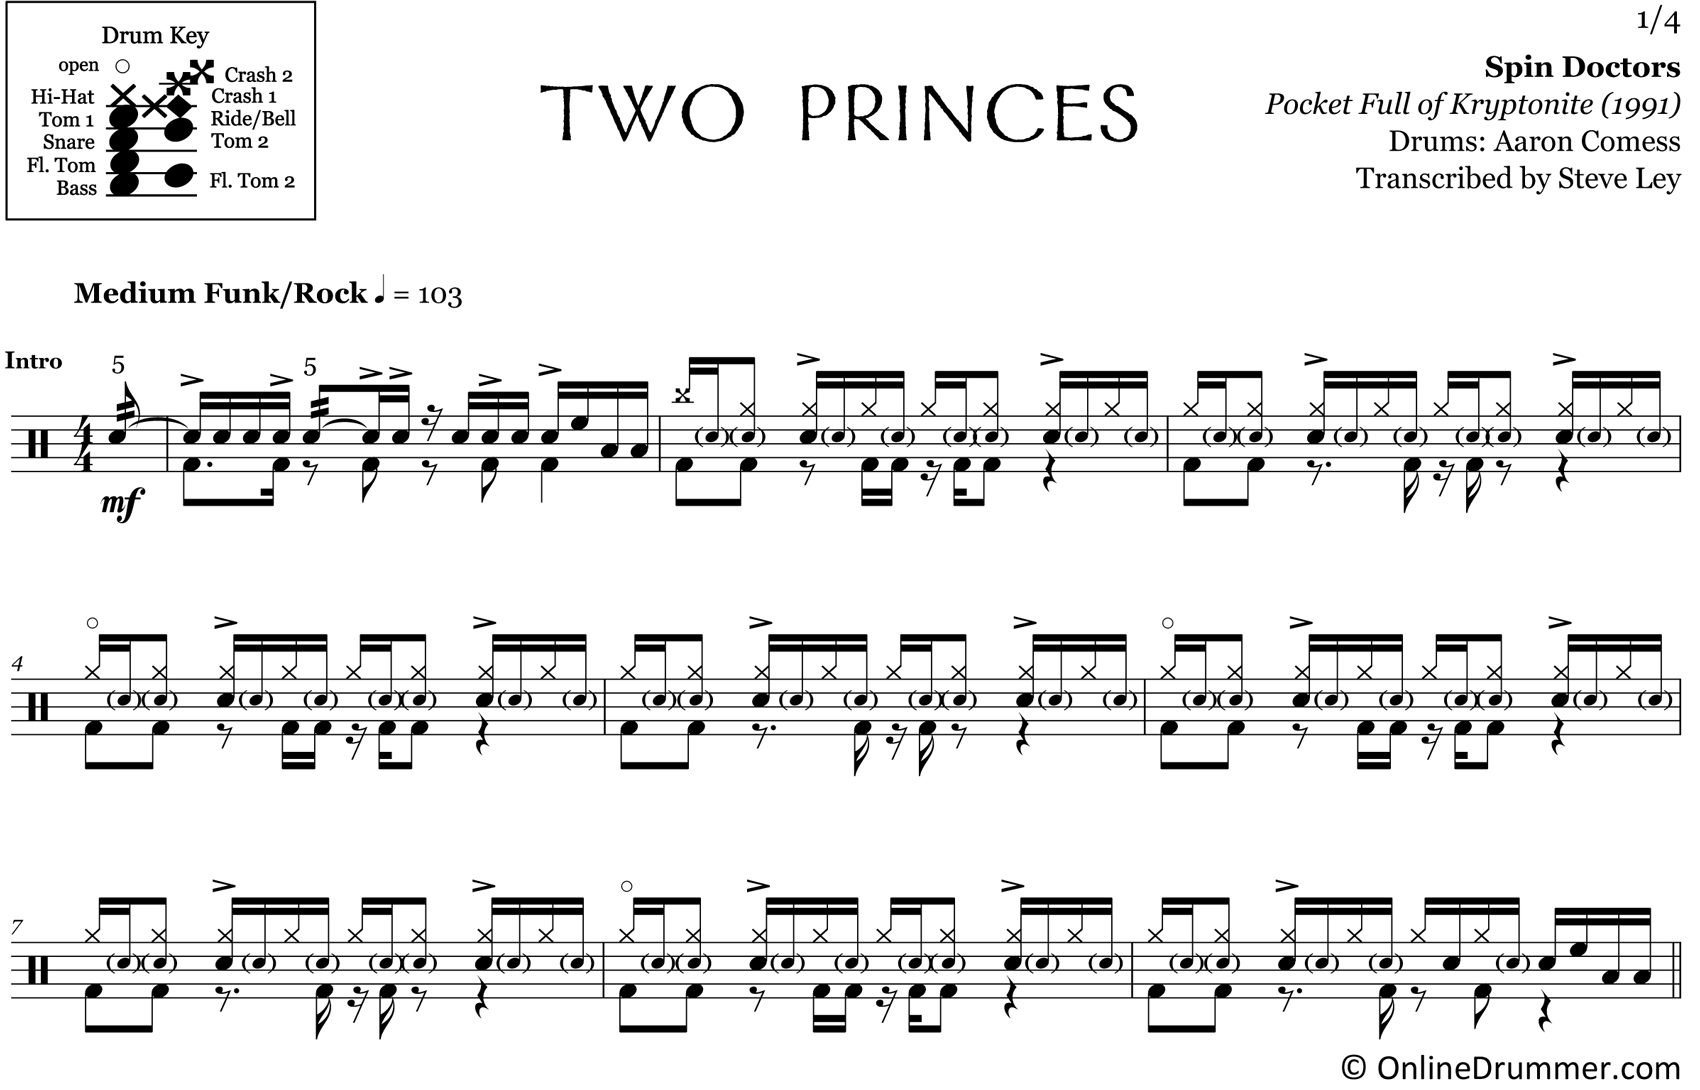 Two Princes - Spin Doctors - Drum Sheet Music